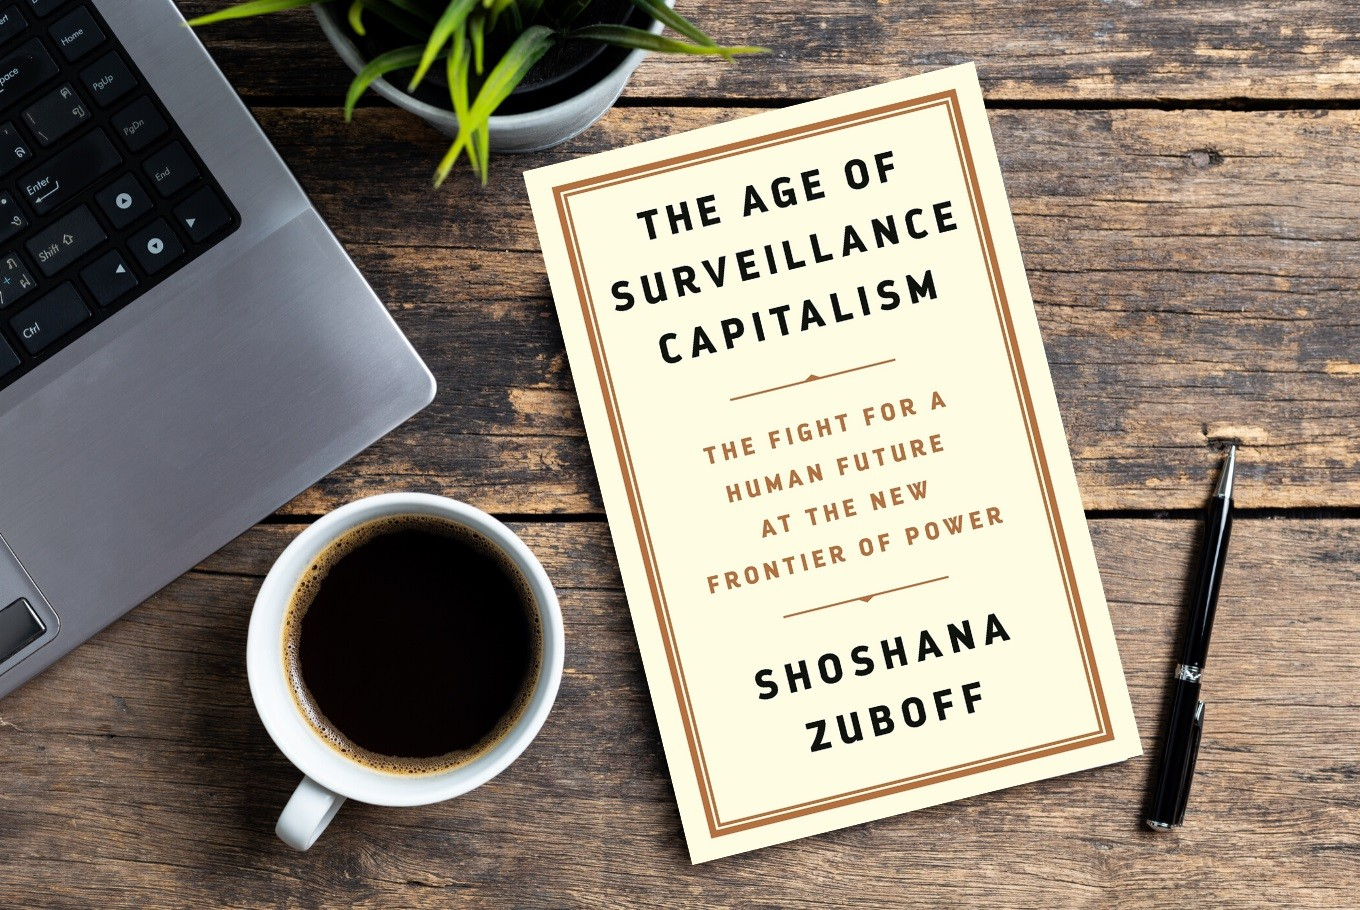 A new data reckoning in 'The Age of Surveillance Capitalism'